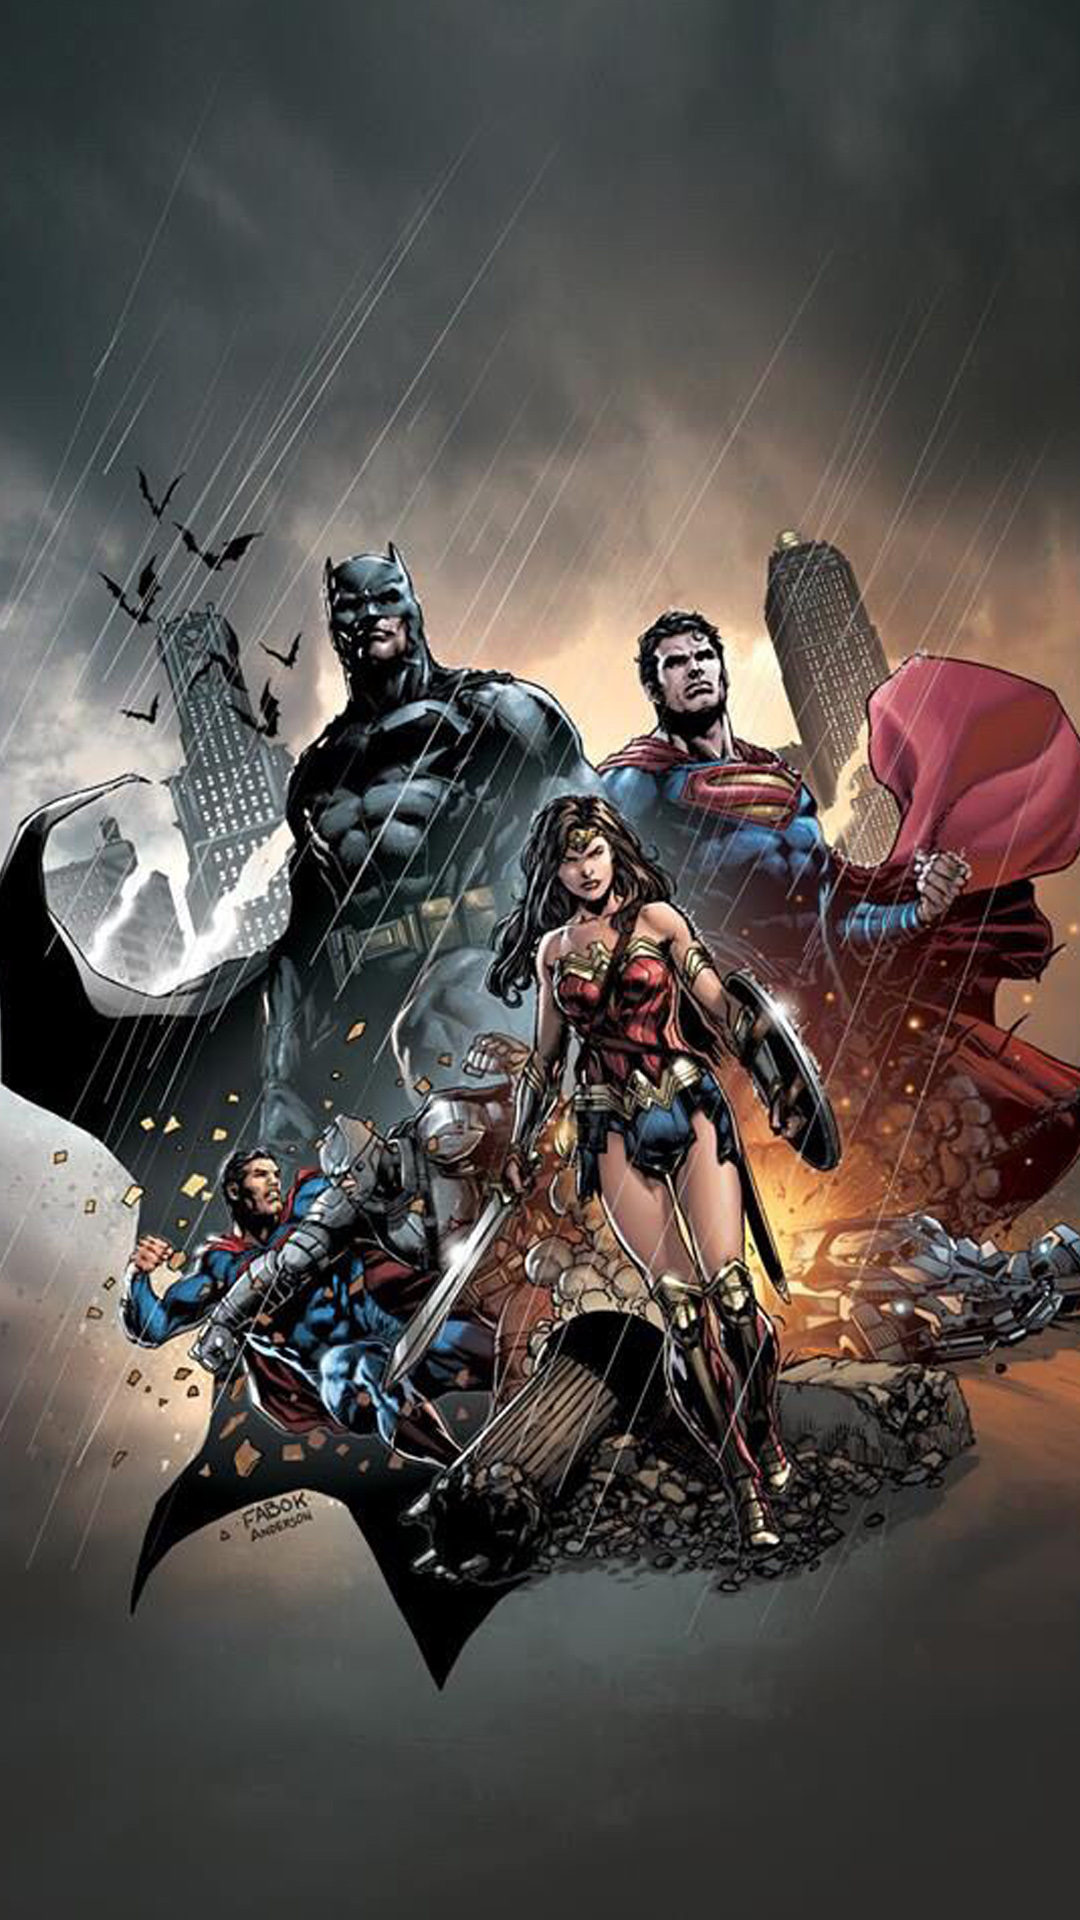 Samsung Galaxy S4 3d Live Wallpaper Download Justice League Iphone Wallpaper Gallery